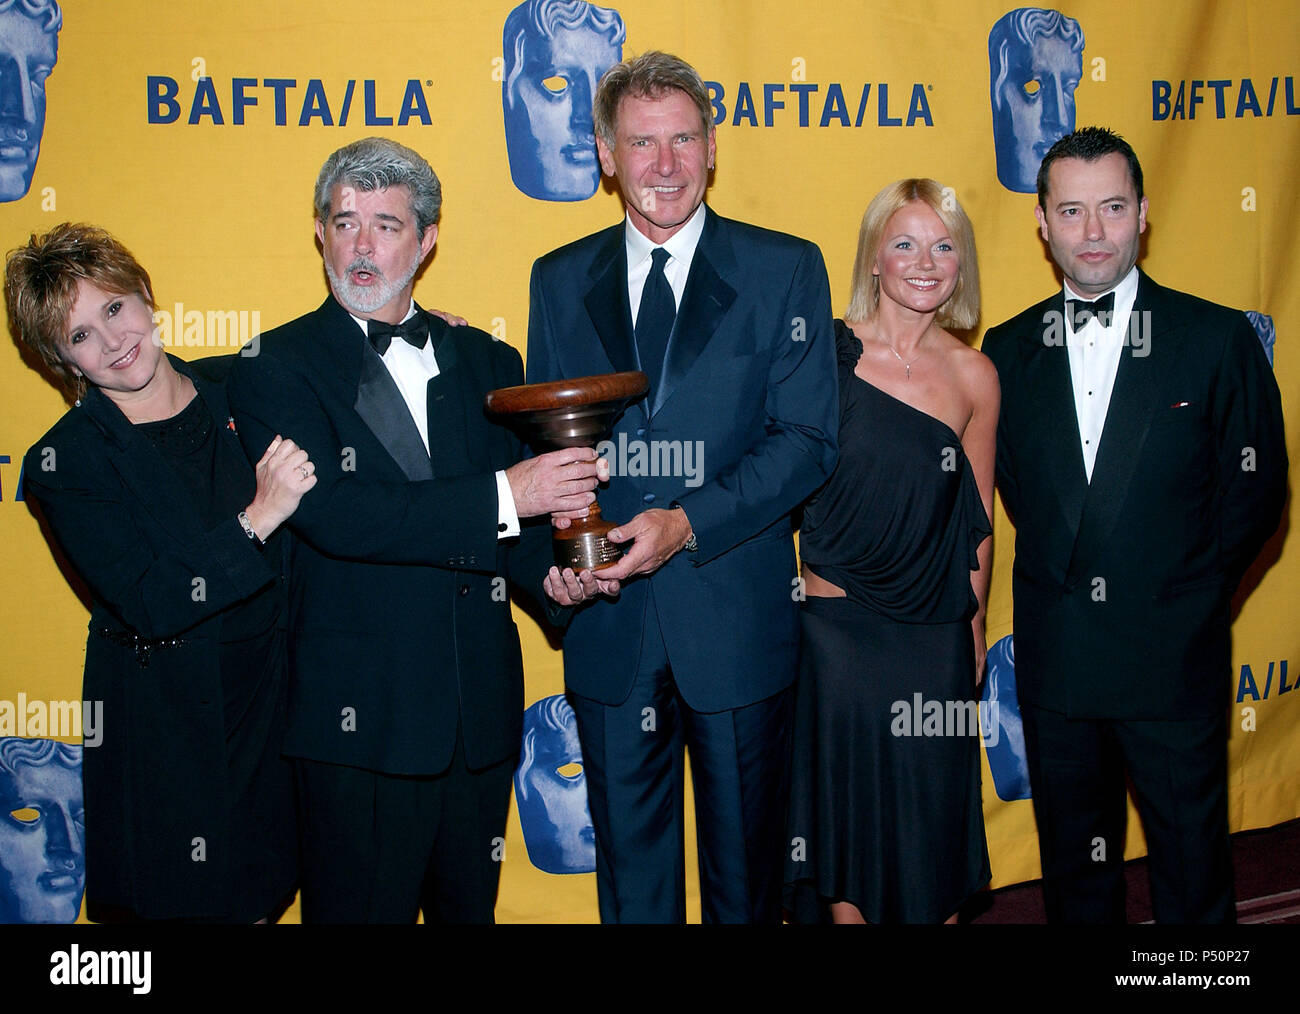 Carrie Fisher, Harrison Ford, Colin Callender (HBO film president) and the performer Geri Halliwell at The 11th Annual BAFTA-LA -Britannia Awards presented to George Lucas at the Beverly Hilton in Los Angeles. April 12,  2002.             -            FisherFordLucasHalliwell03.jpgFisherFordLucasHalliwell03  Event in Hollywood Life - California, Red Carpet Event, USA, Film Industry, Celebrities, Photography, Bestof, Arts Culture and Entertainment, Topix Celebrities fashion, Best of, Hollywood Life, Event in Hollywood Life - California,  backstage trophy, Awards show, movie celebrities, TV cele - Stock Image